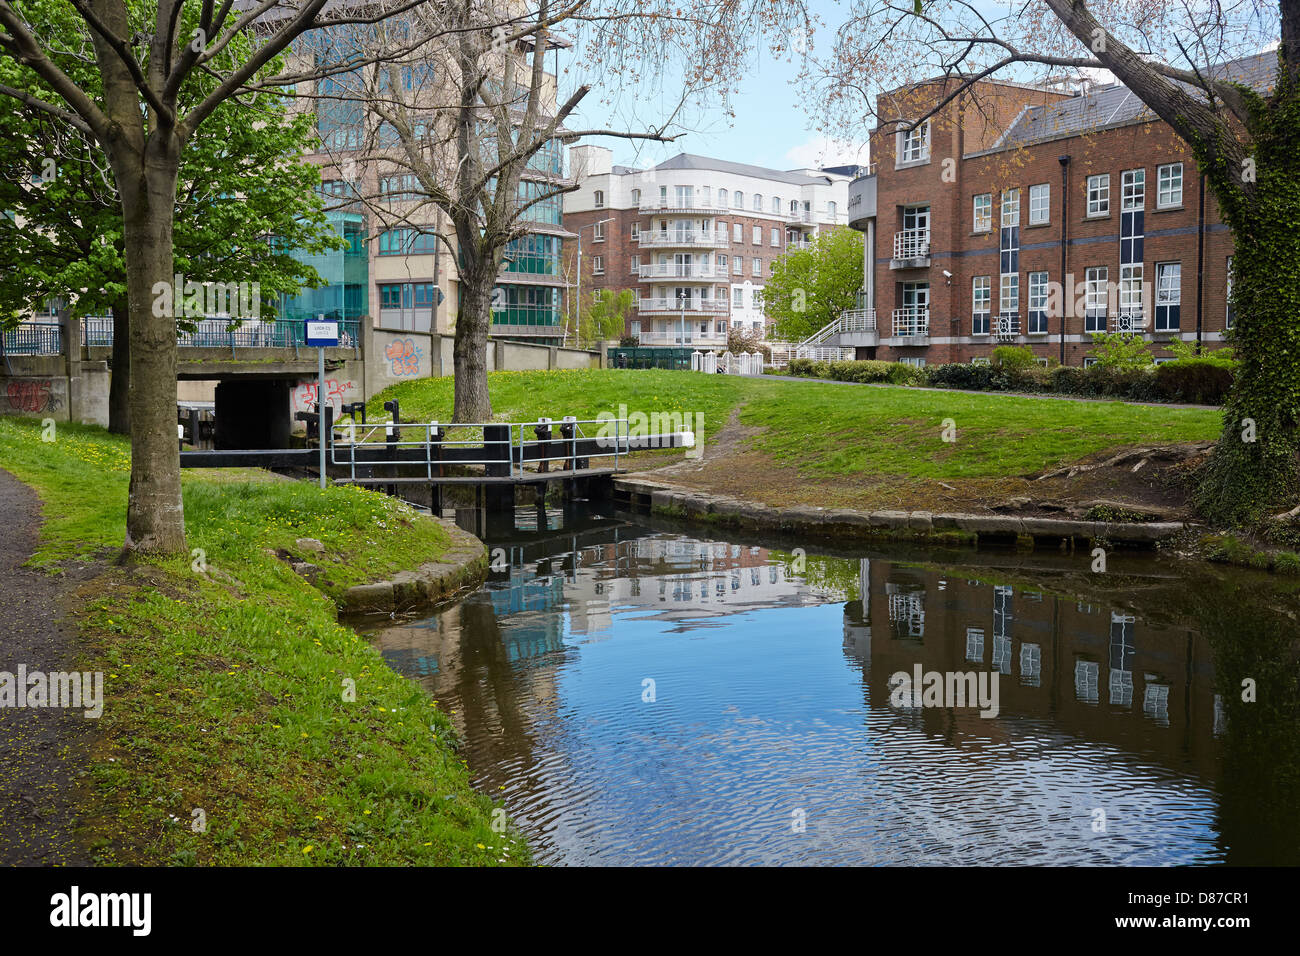 View of the grand Canal by lock C1 on Clanwilliam Place, Dublin, Ireland - Stock Image